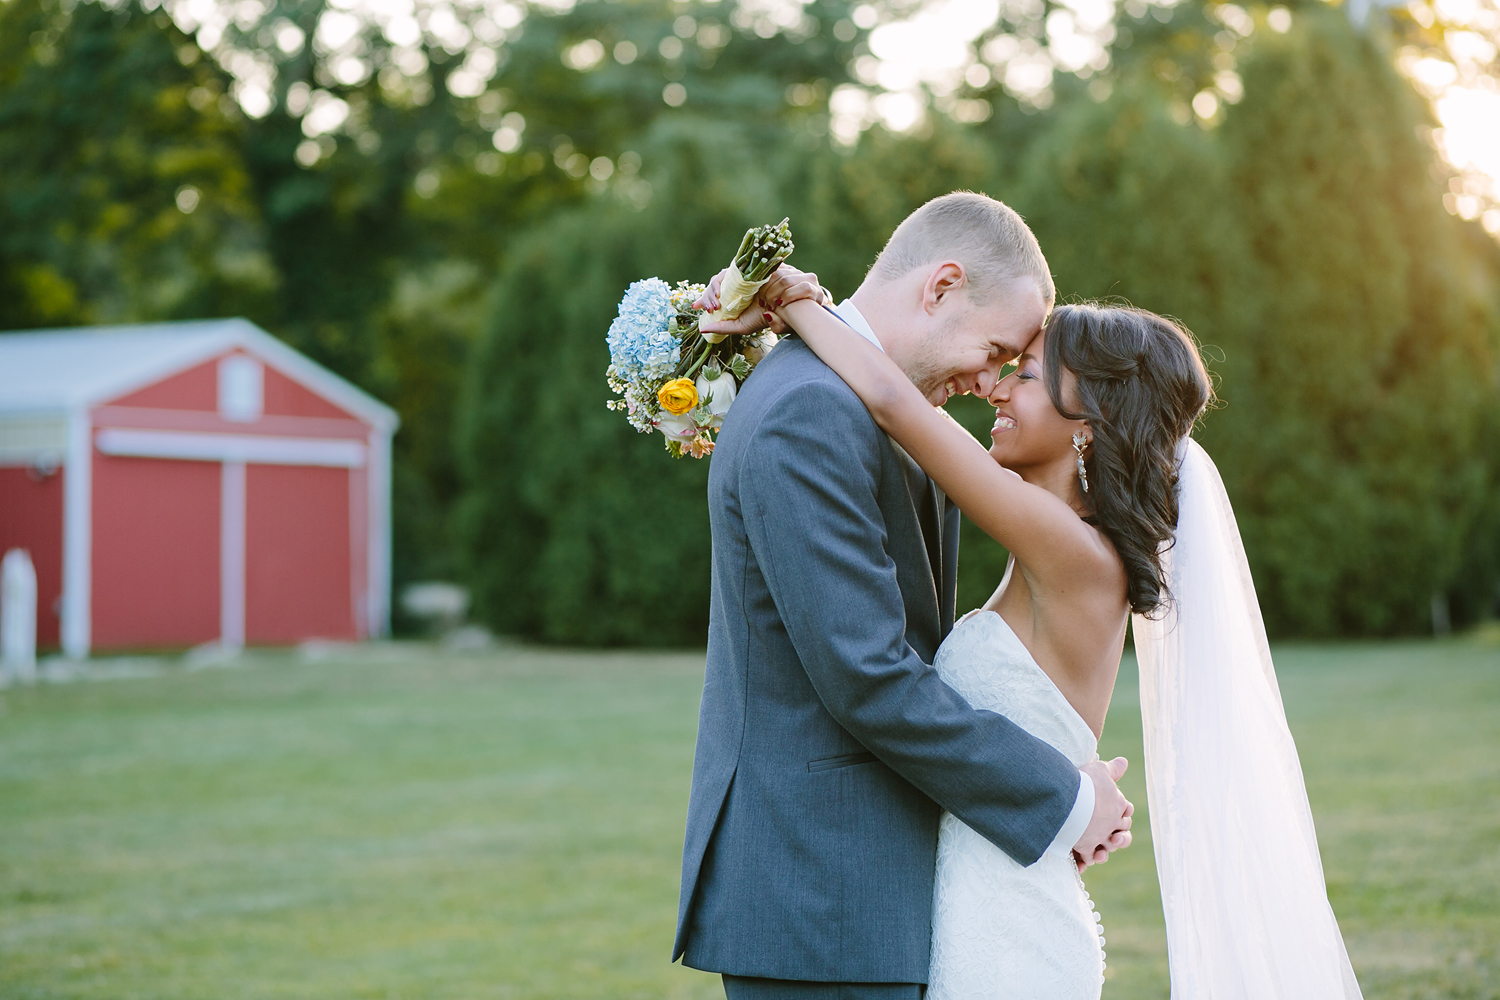 Wedding-Photographer-In-Newport-Rhode-Island-17.JPG